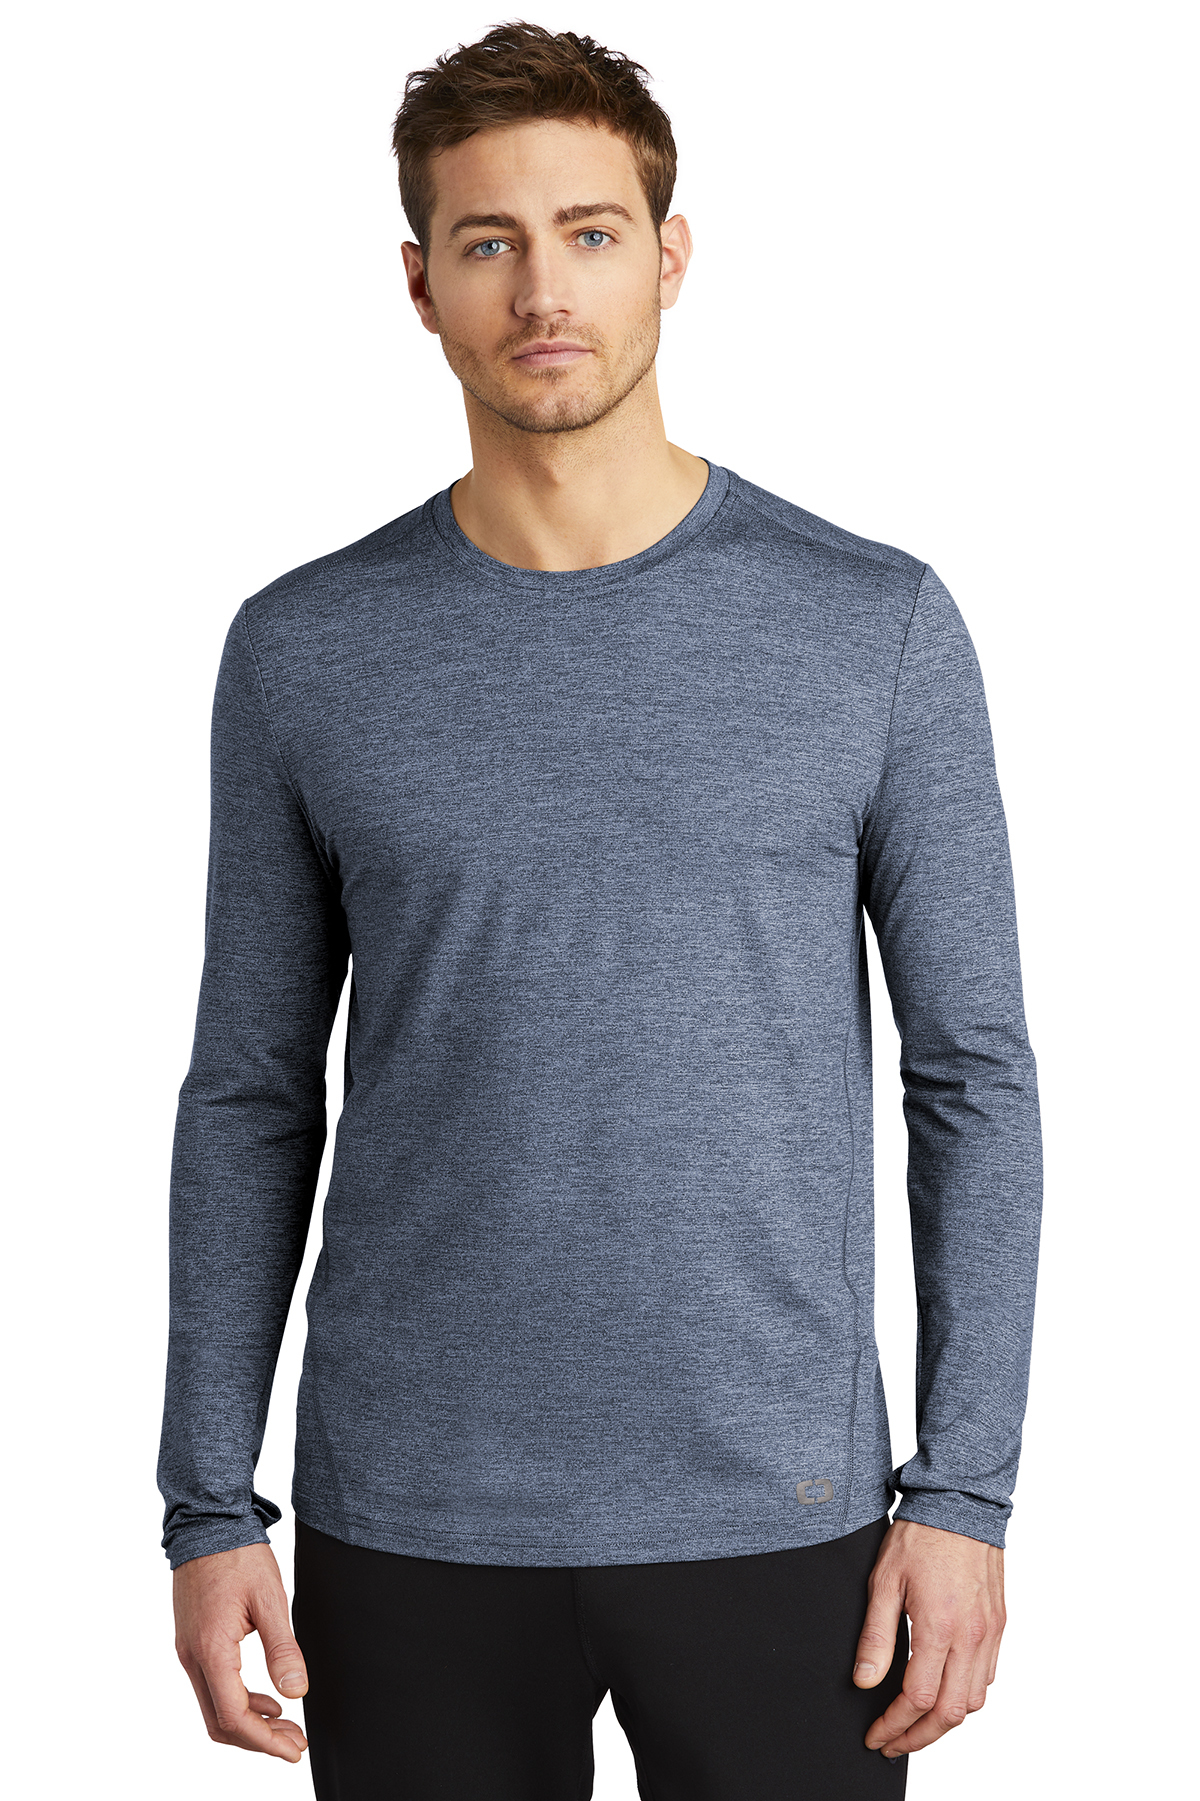 OGIO ENDURANCE OE340 - Force Long Sleeve Tee